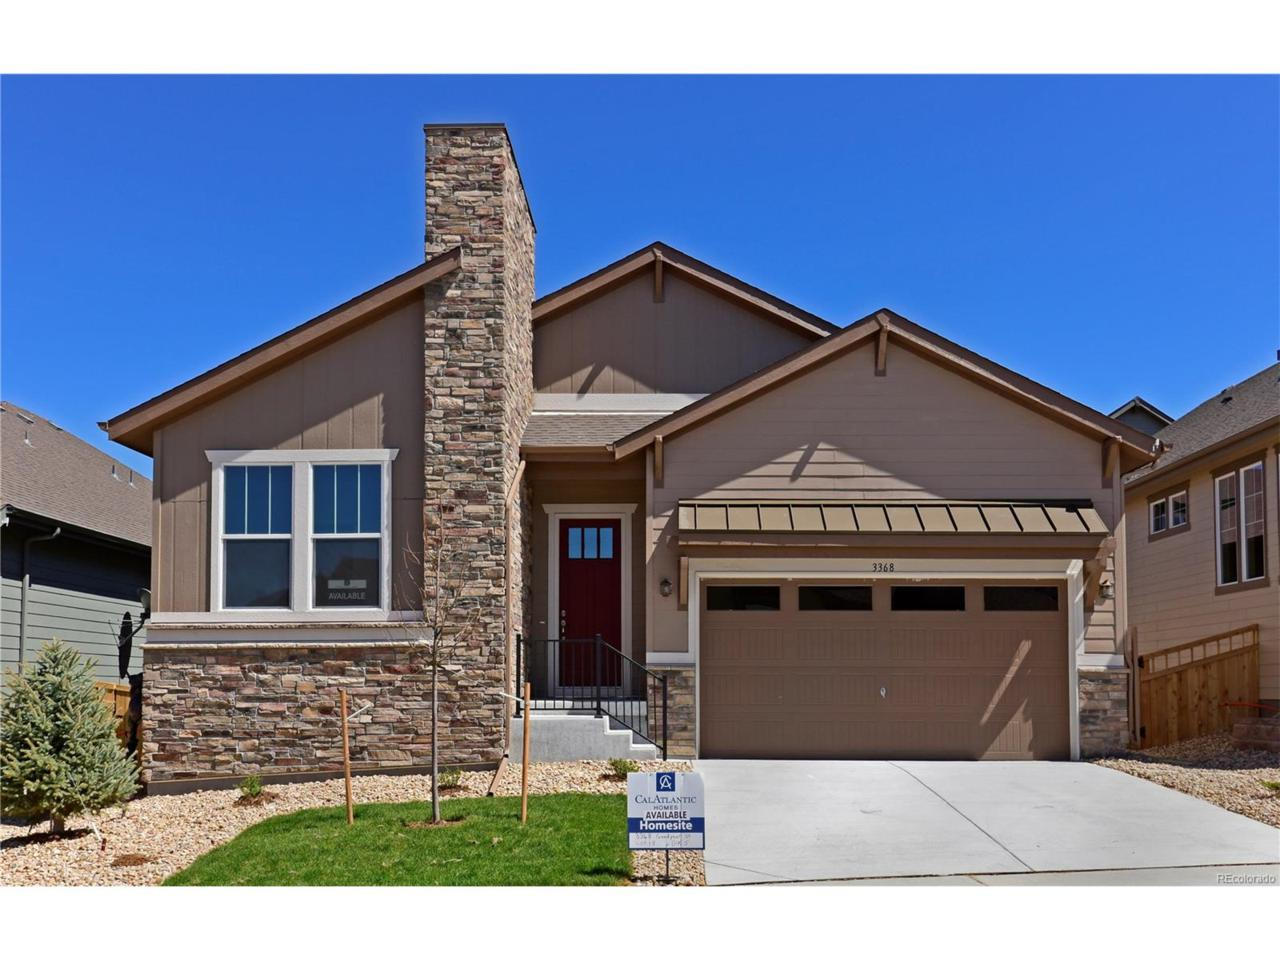 3368 Goodyear Street, Castle Rock, CO 80109 (MLS #9804655) :: 8z Real Estate